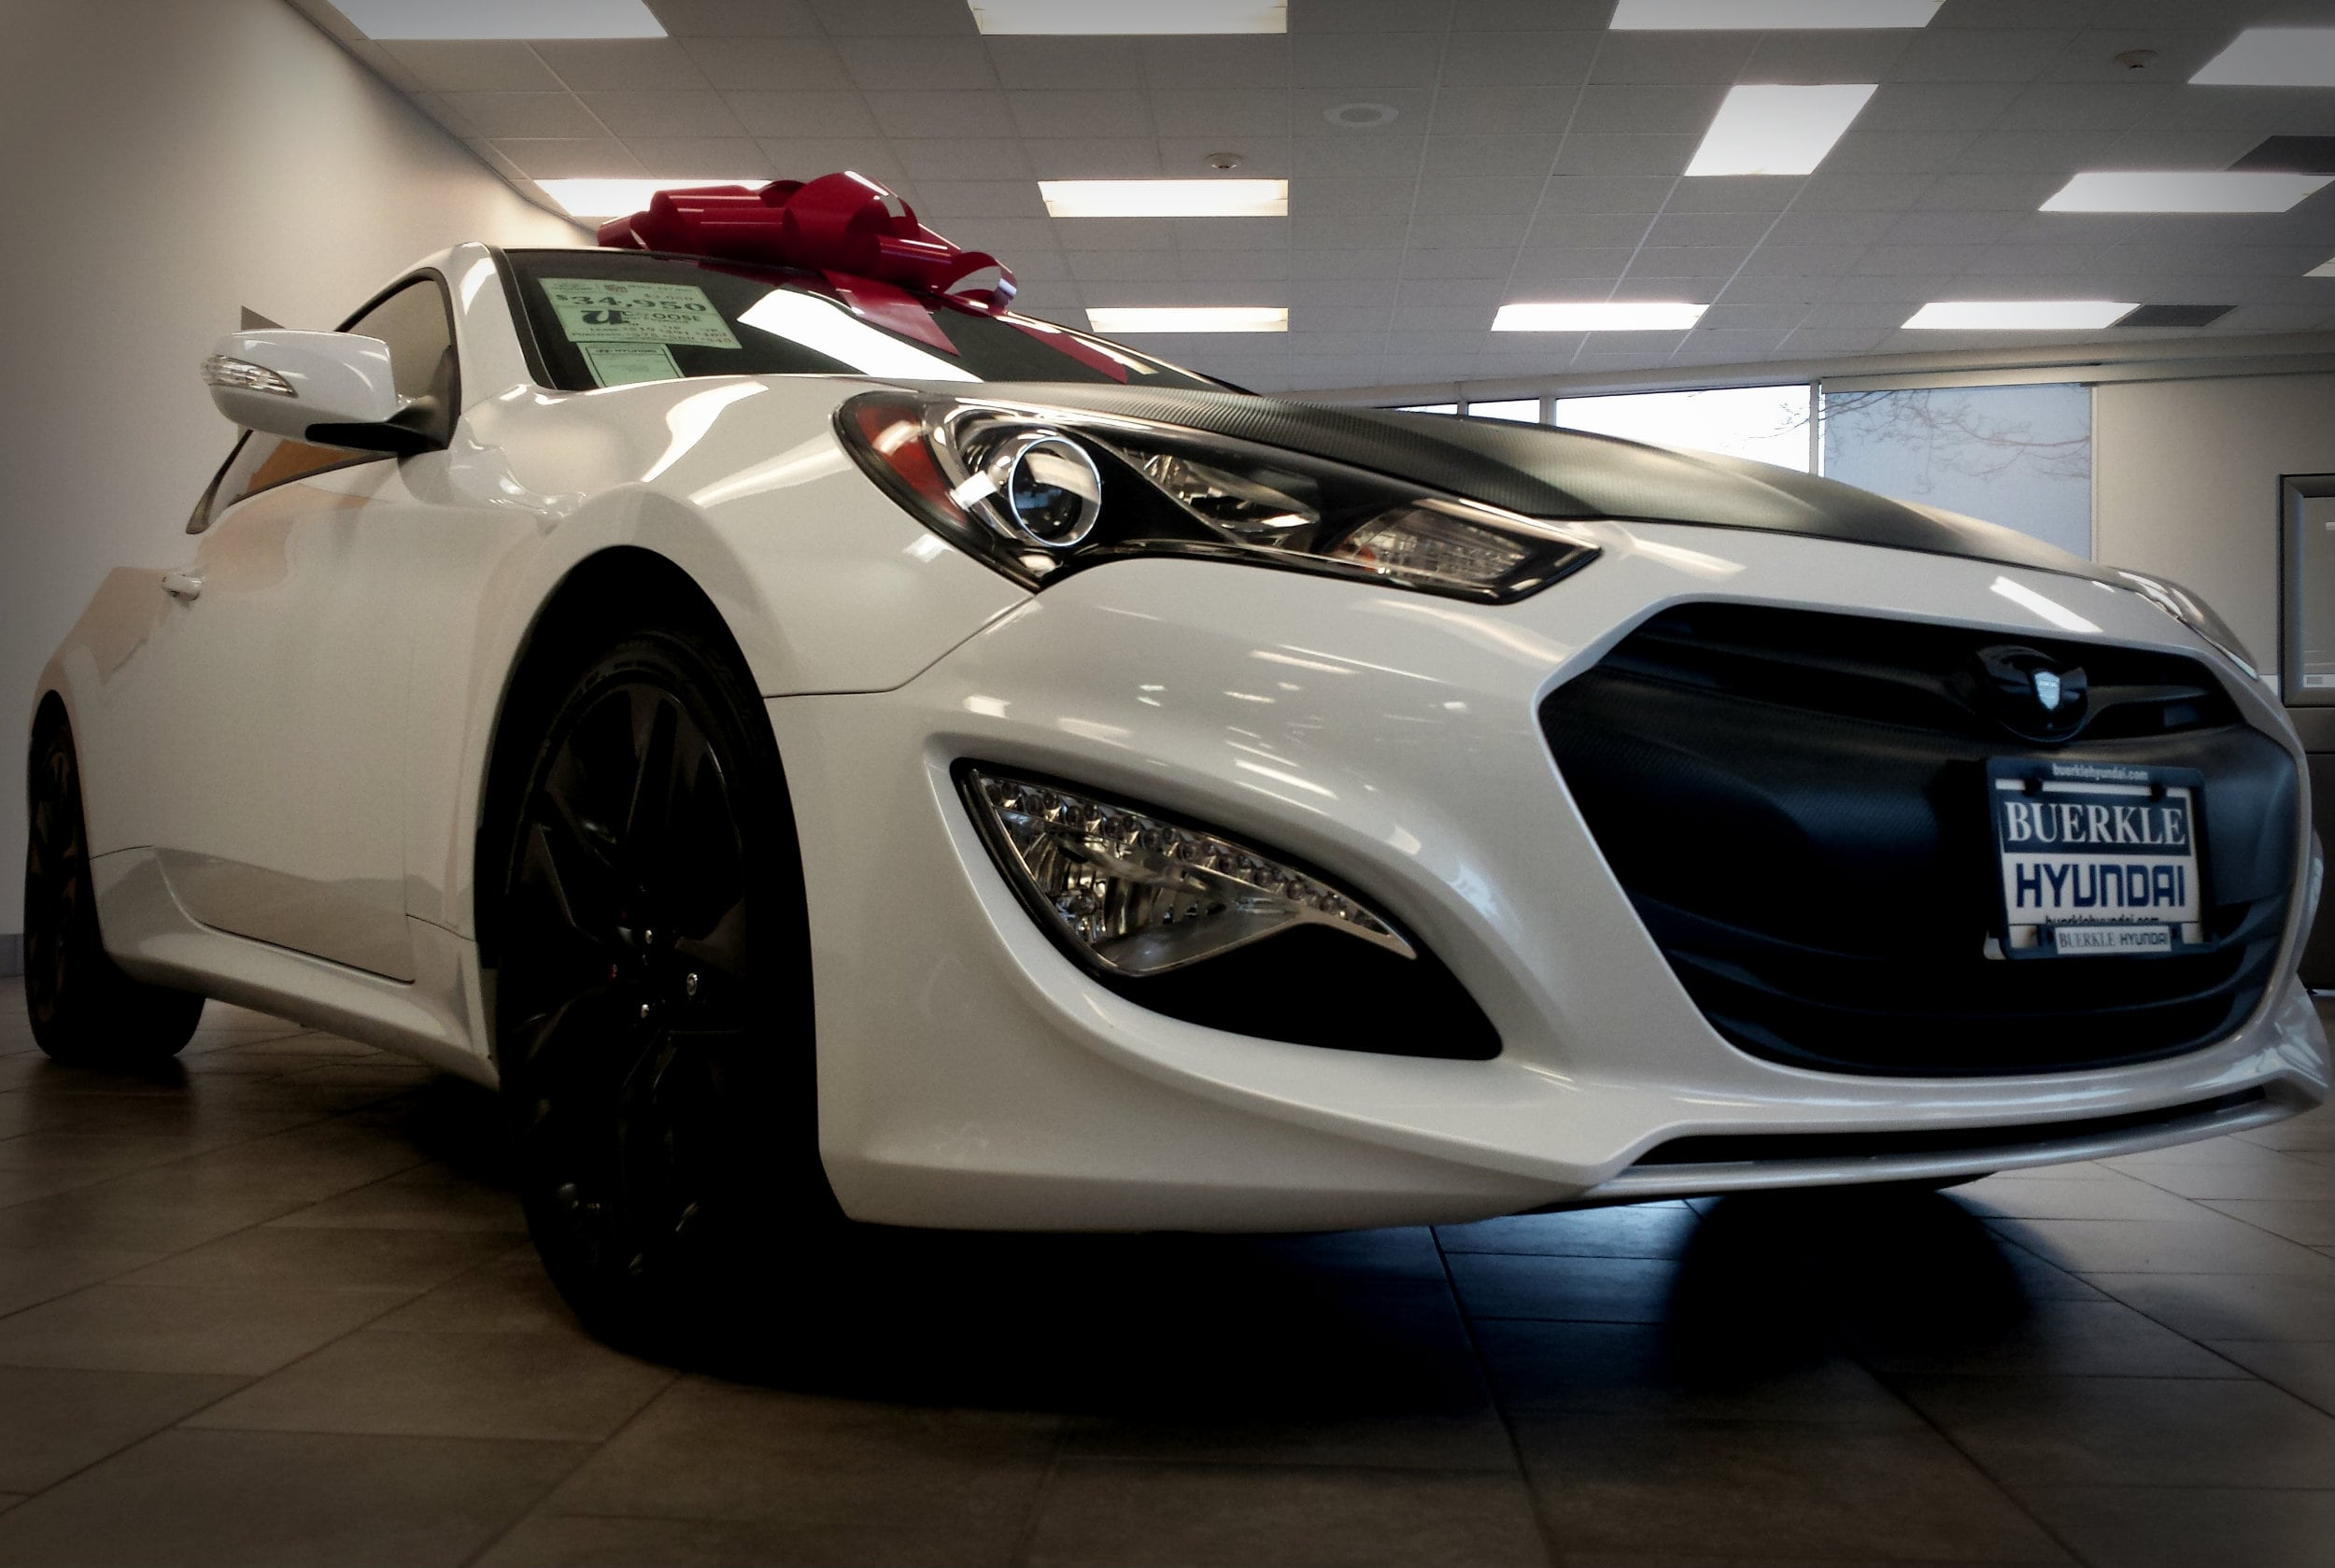 More Awesome Than Ever The Hyundai Genesis Coupe 3 8